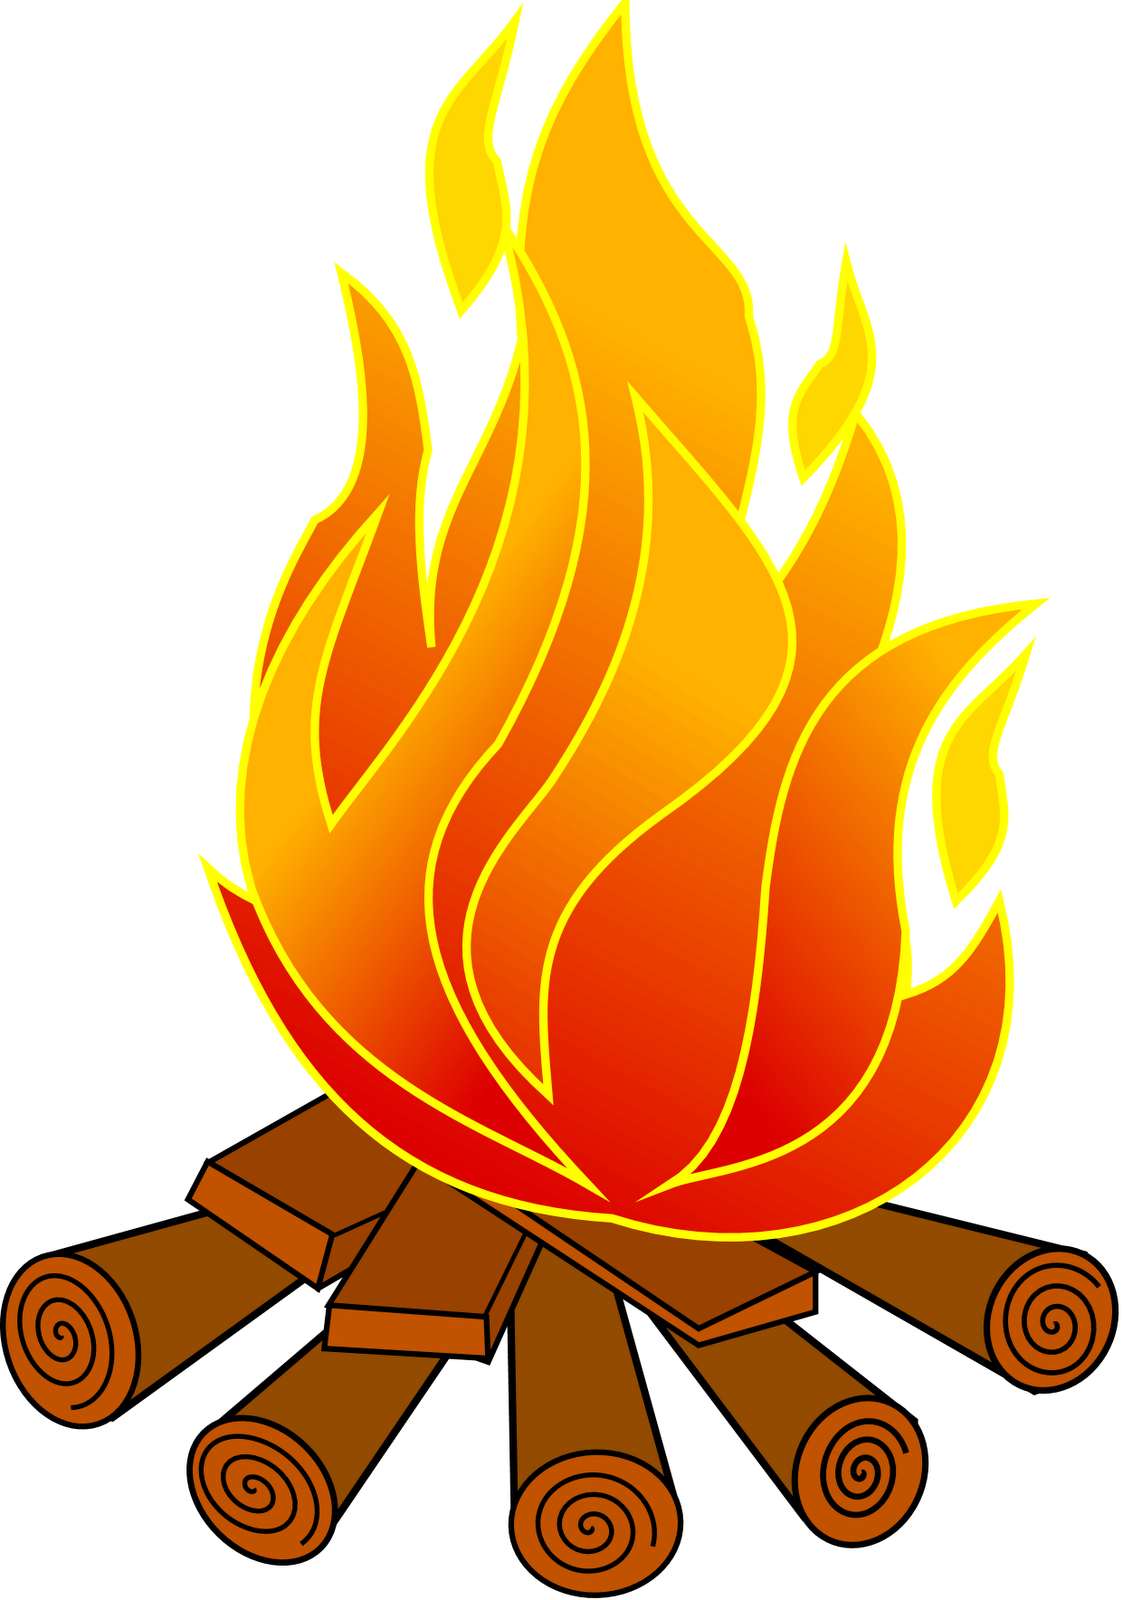 Firewood clipart animated, Firewood animated Transparent.